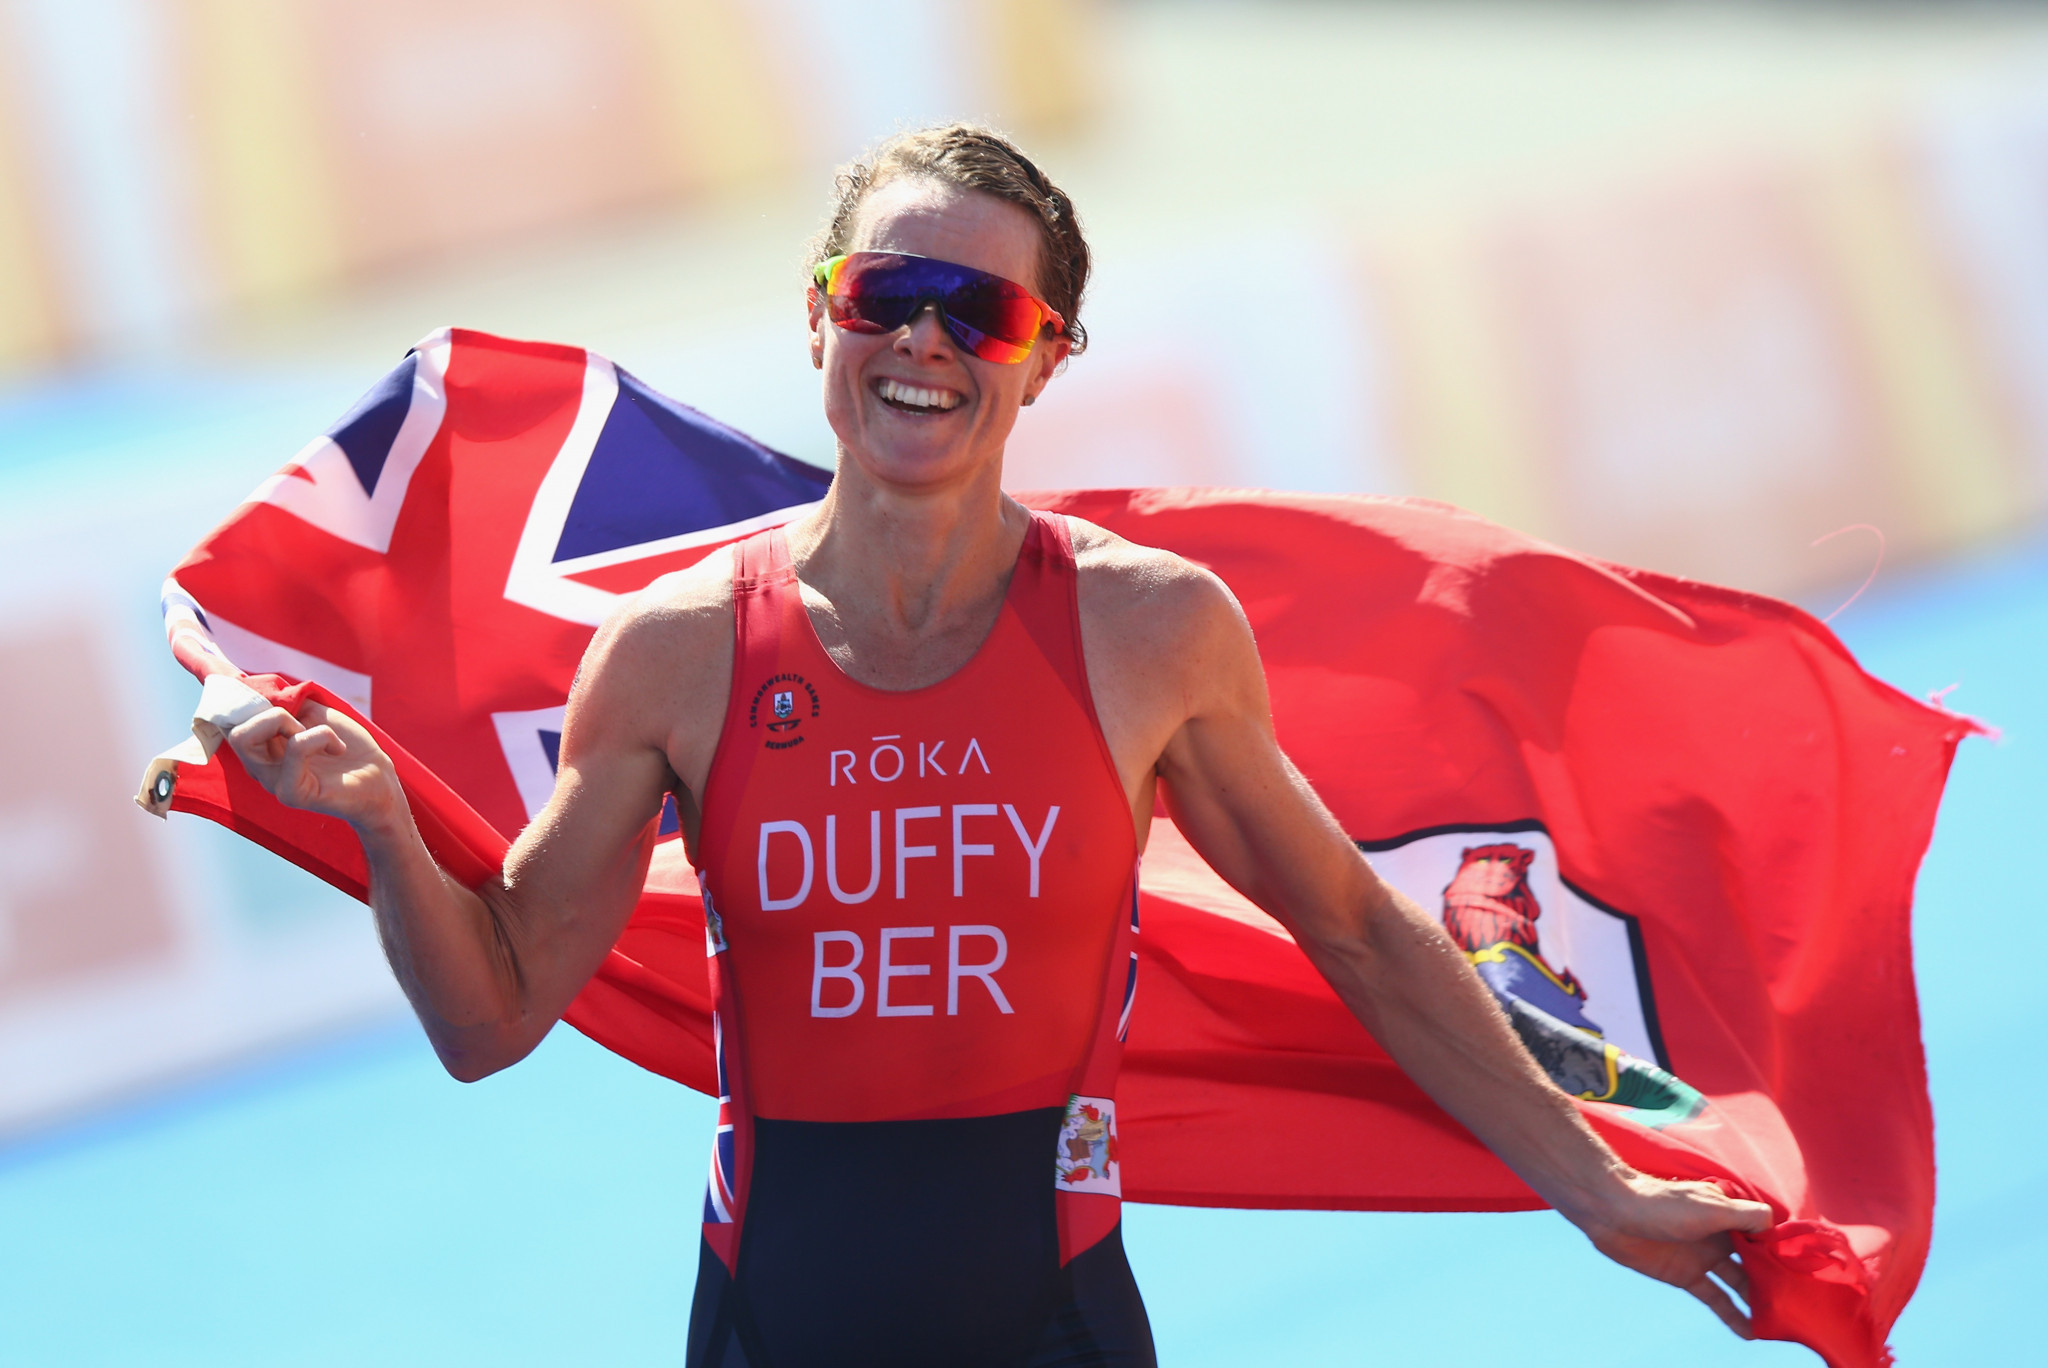 Flora Duffy of Bermuda celebrates on her way to winning gold during the Women's Triathlon on day one of the Gold Coast 2018 Commonwealth Games ©Getty Images